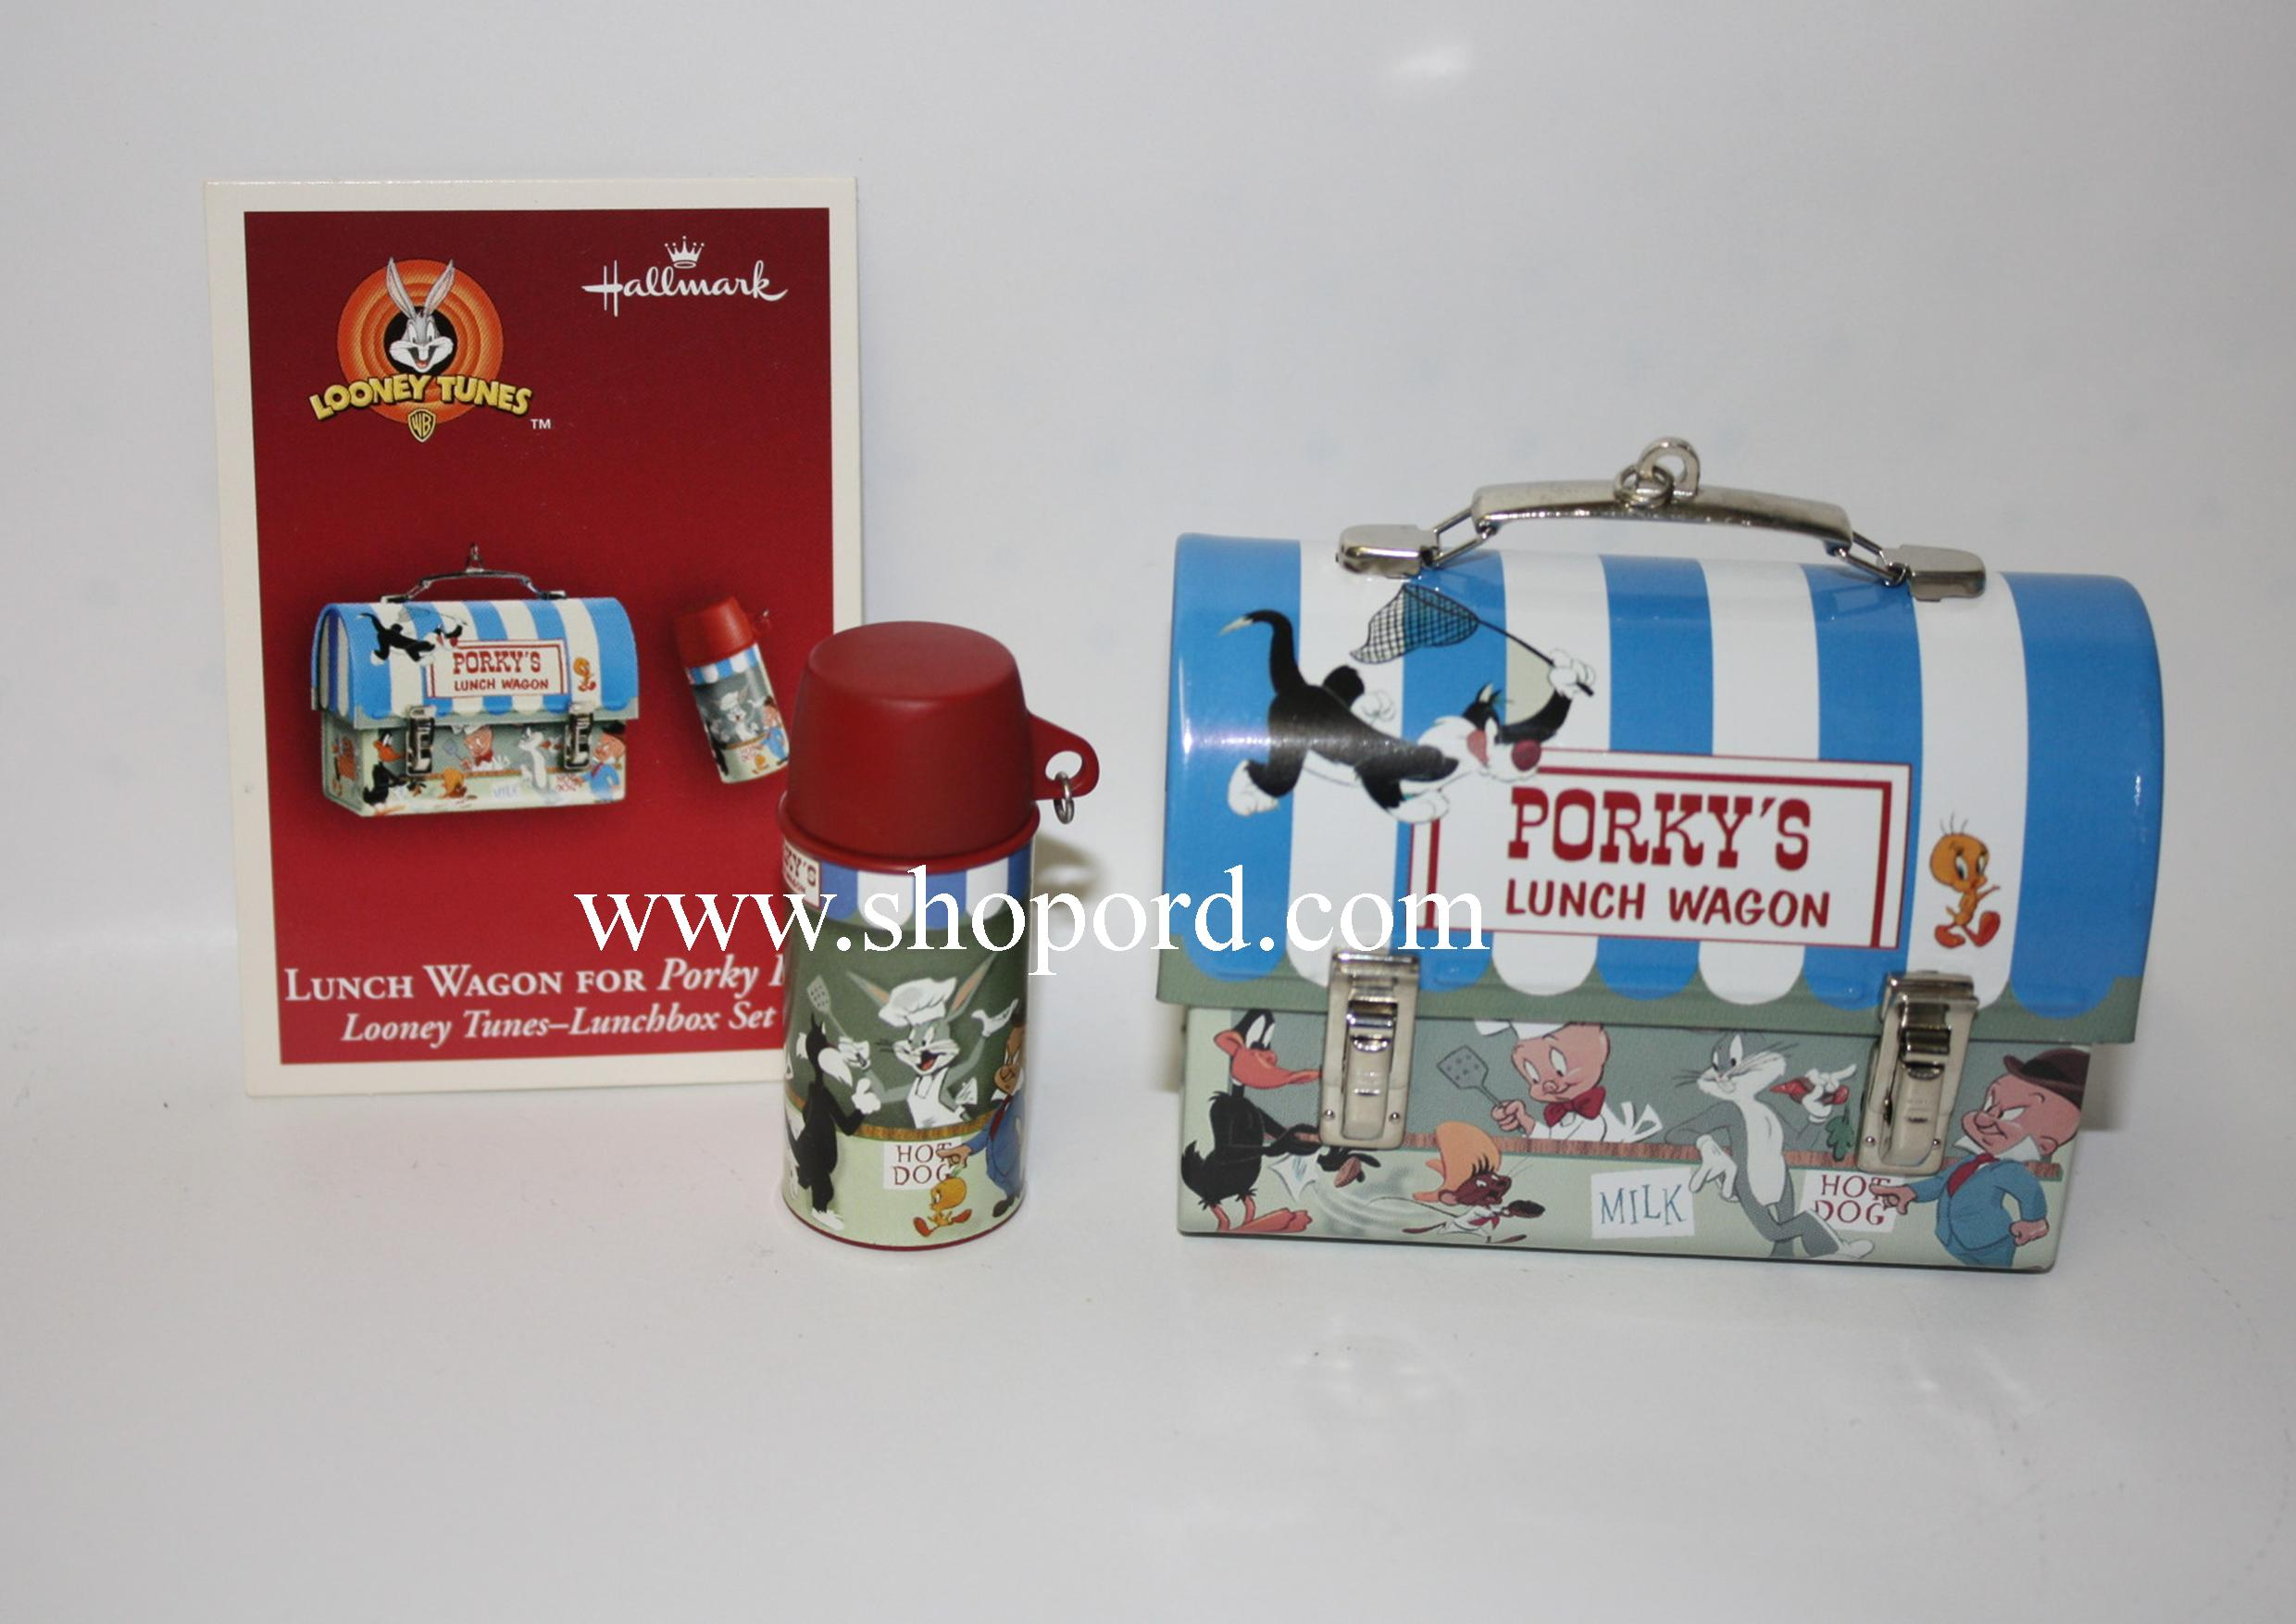 Hallmark 2004 Lunch Wagon For Porky Pig Ornament Looney Times Lunchbox set QXI4051